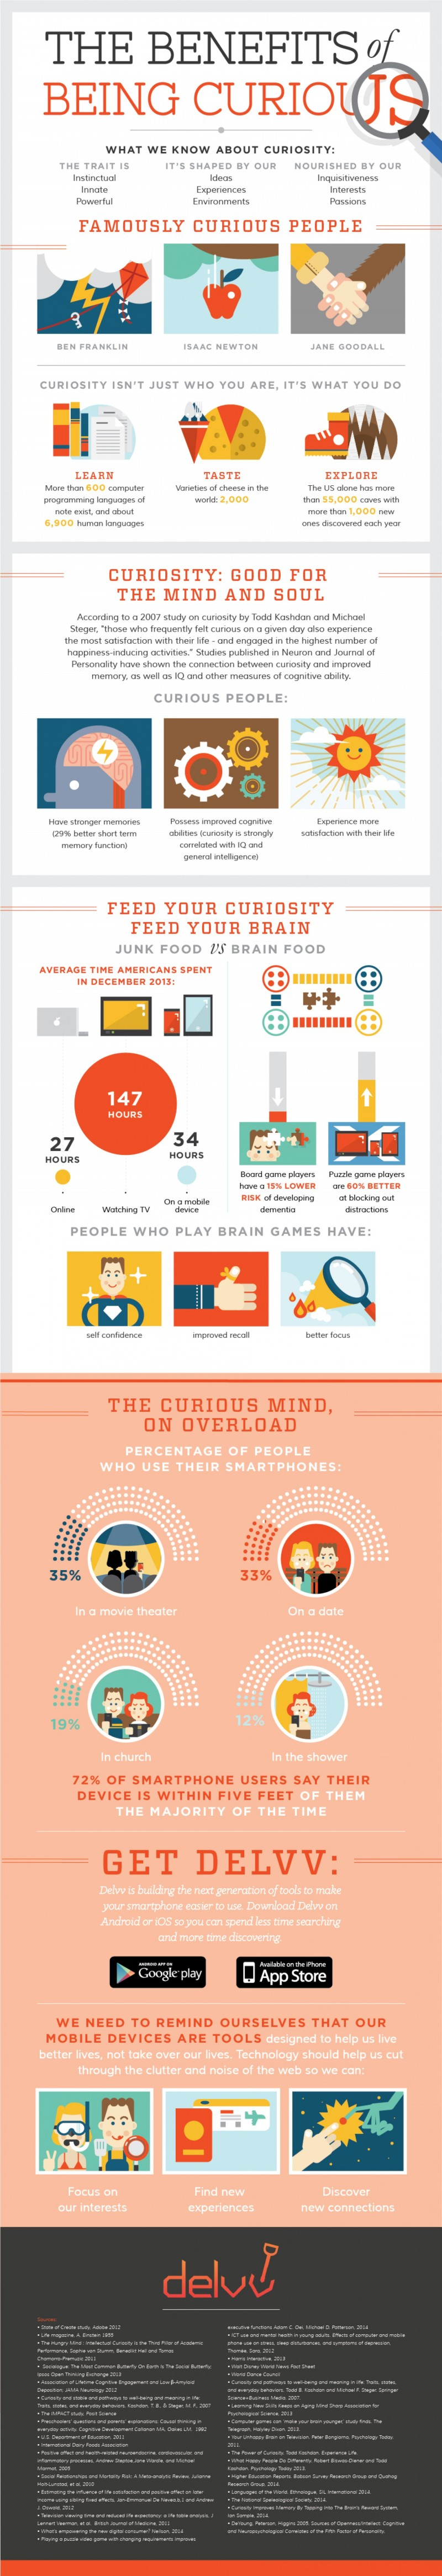 The Benefits of Being Curious Infographic